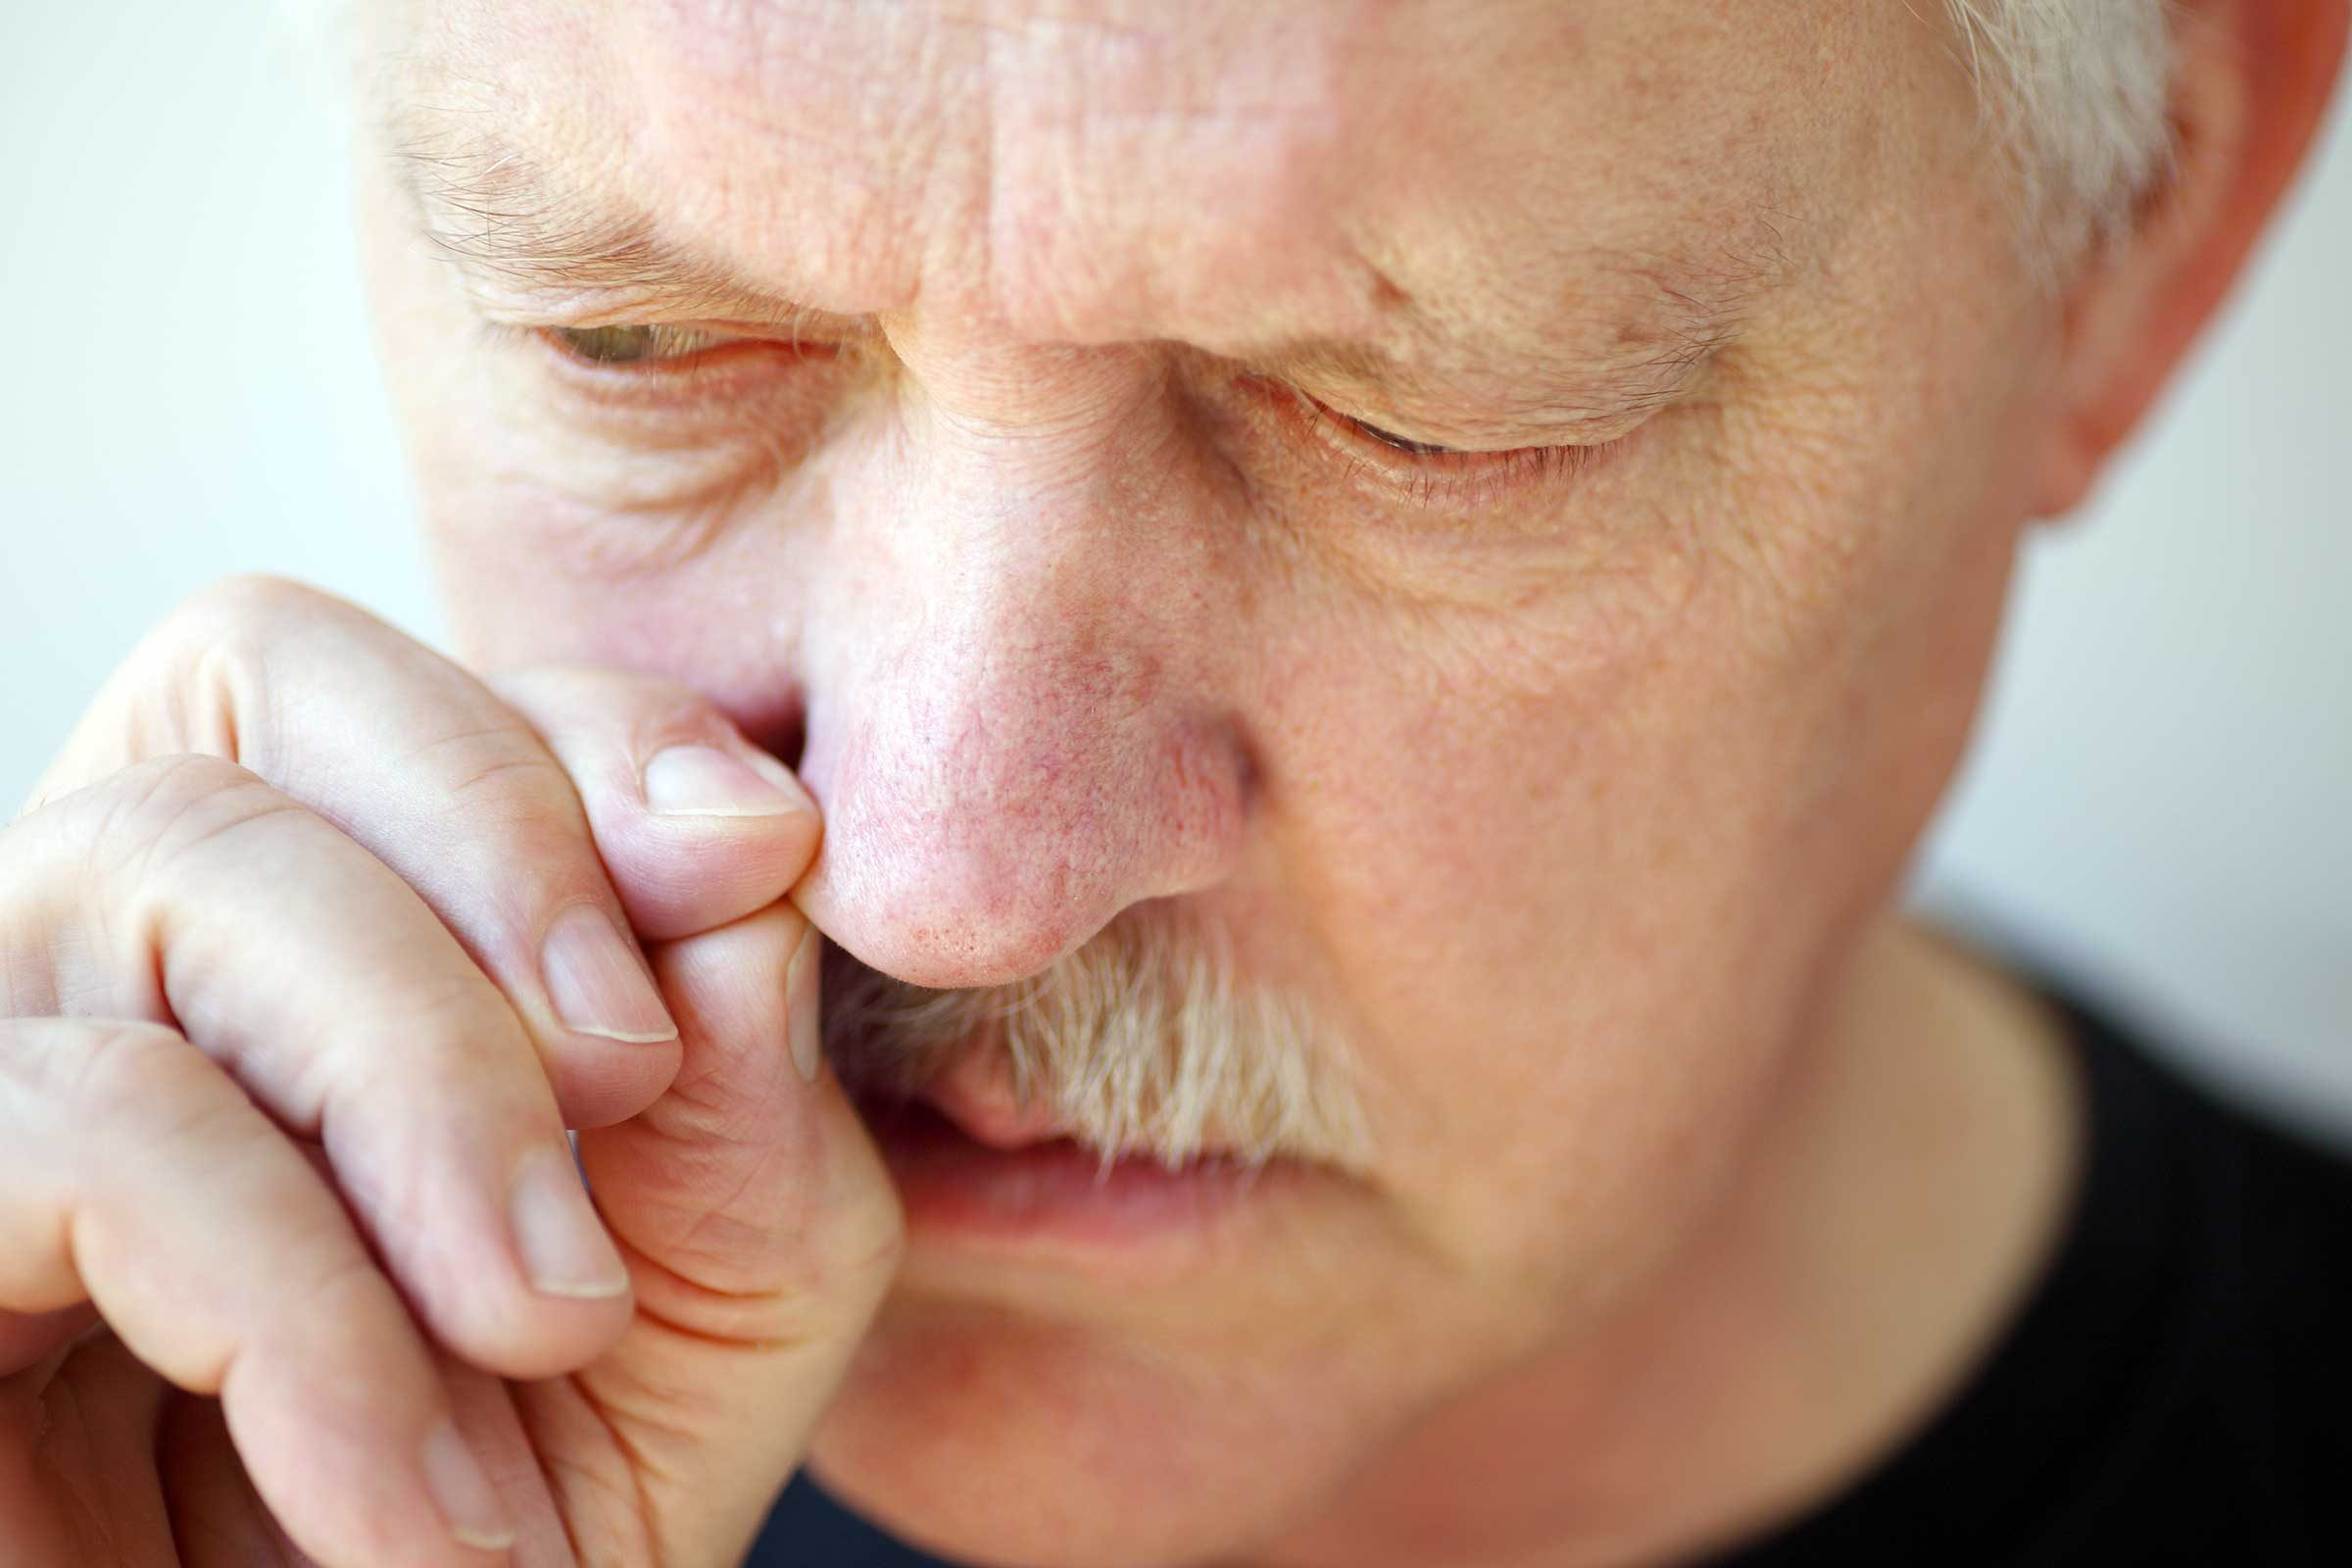 Facial swelling with copd